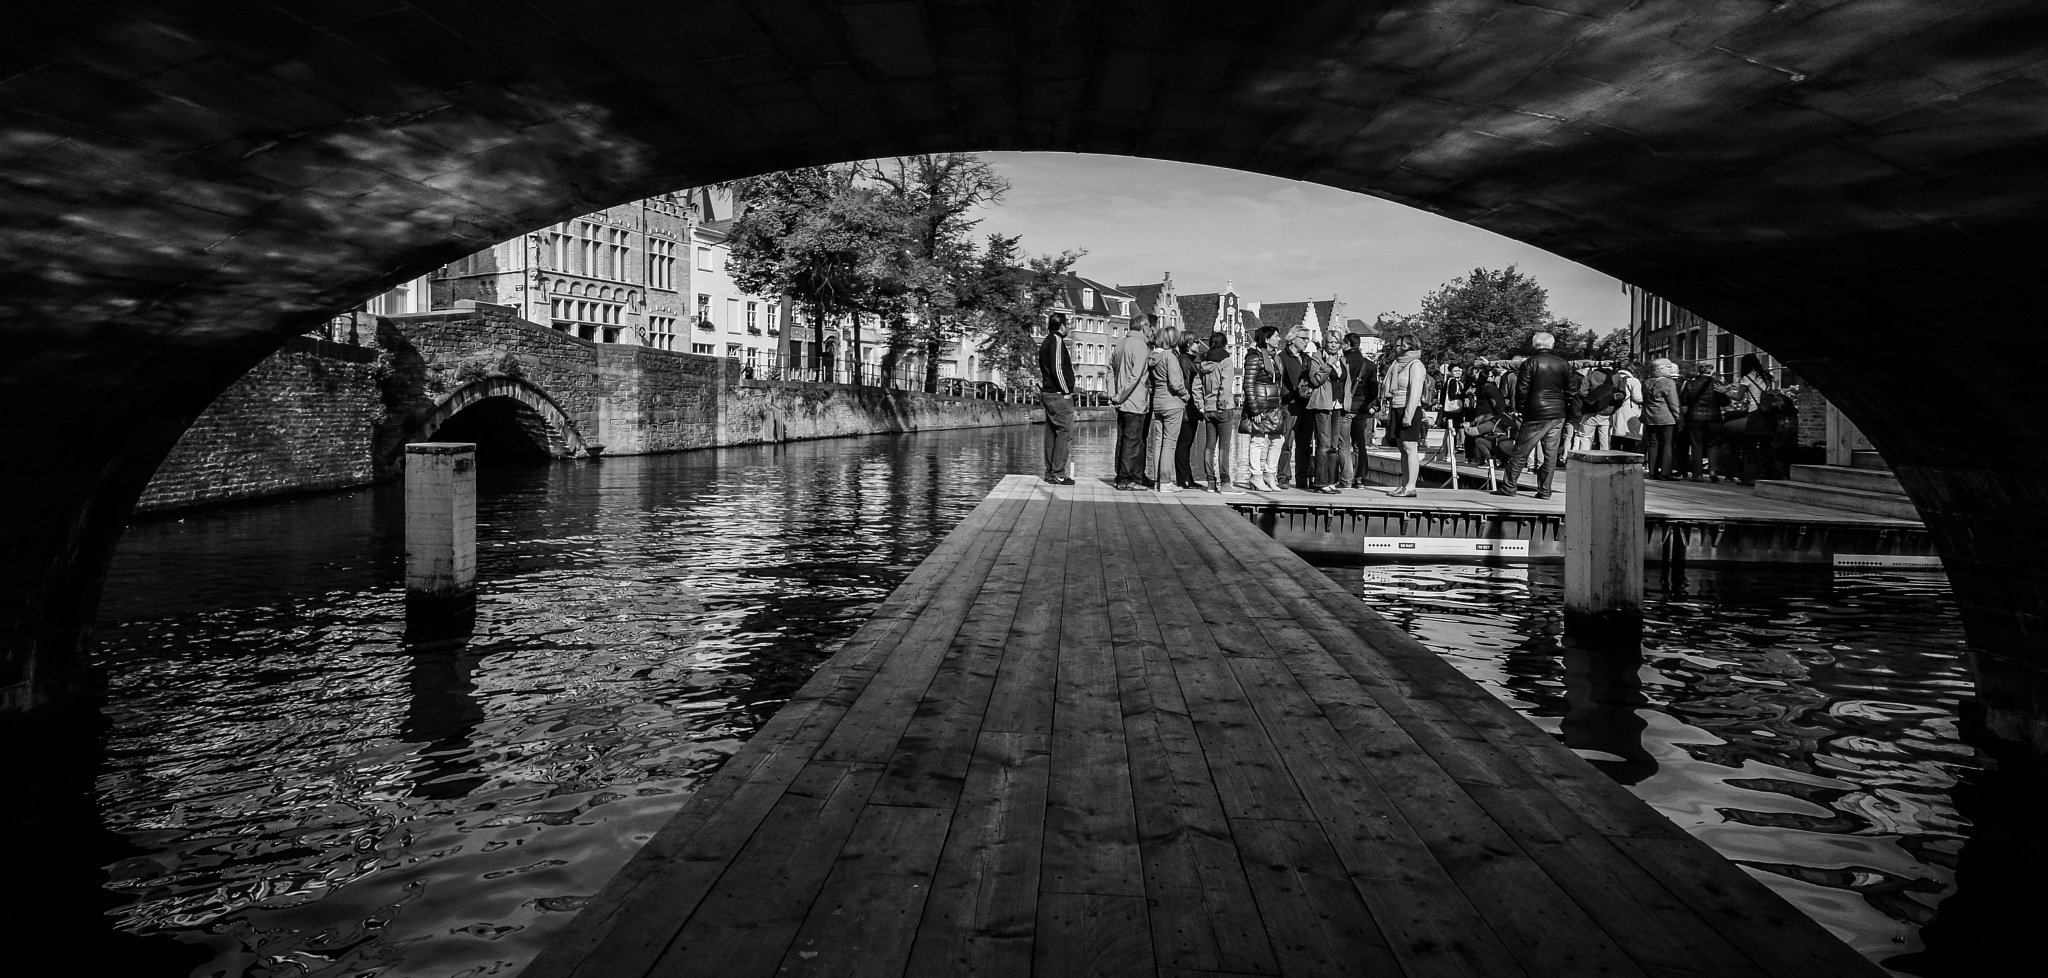 Tourist on Bruges canals by Noel Pauwaert